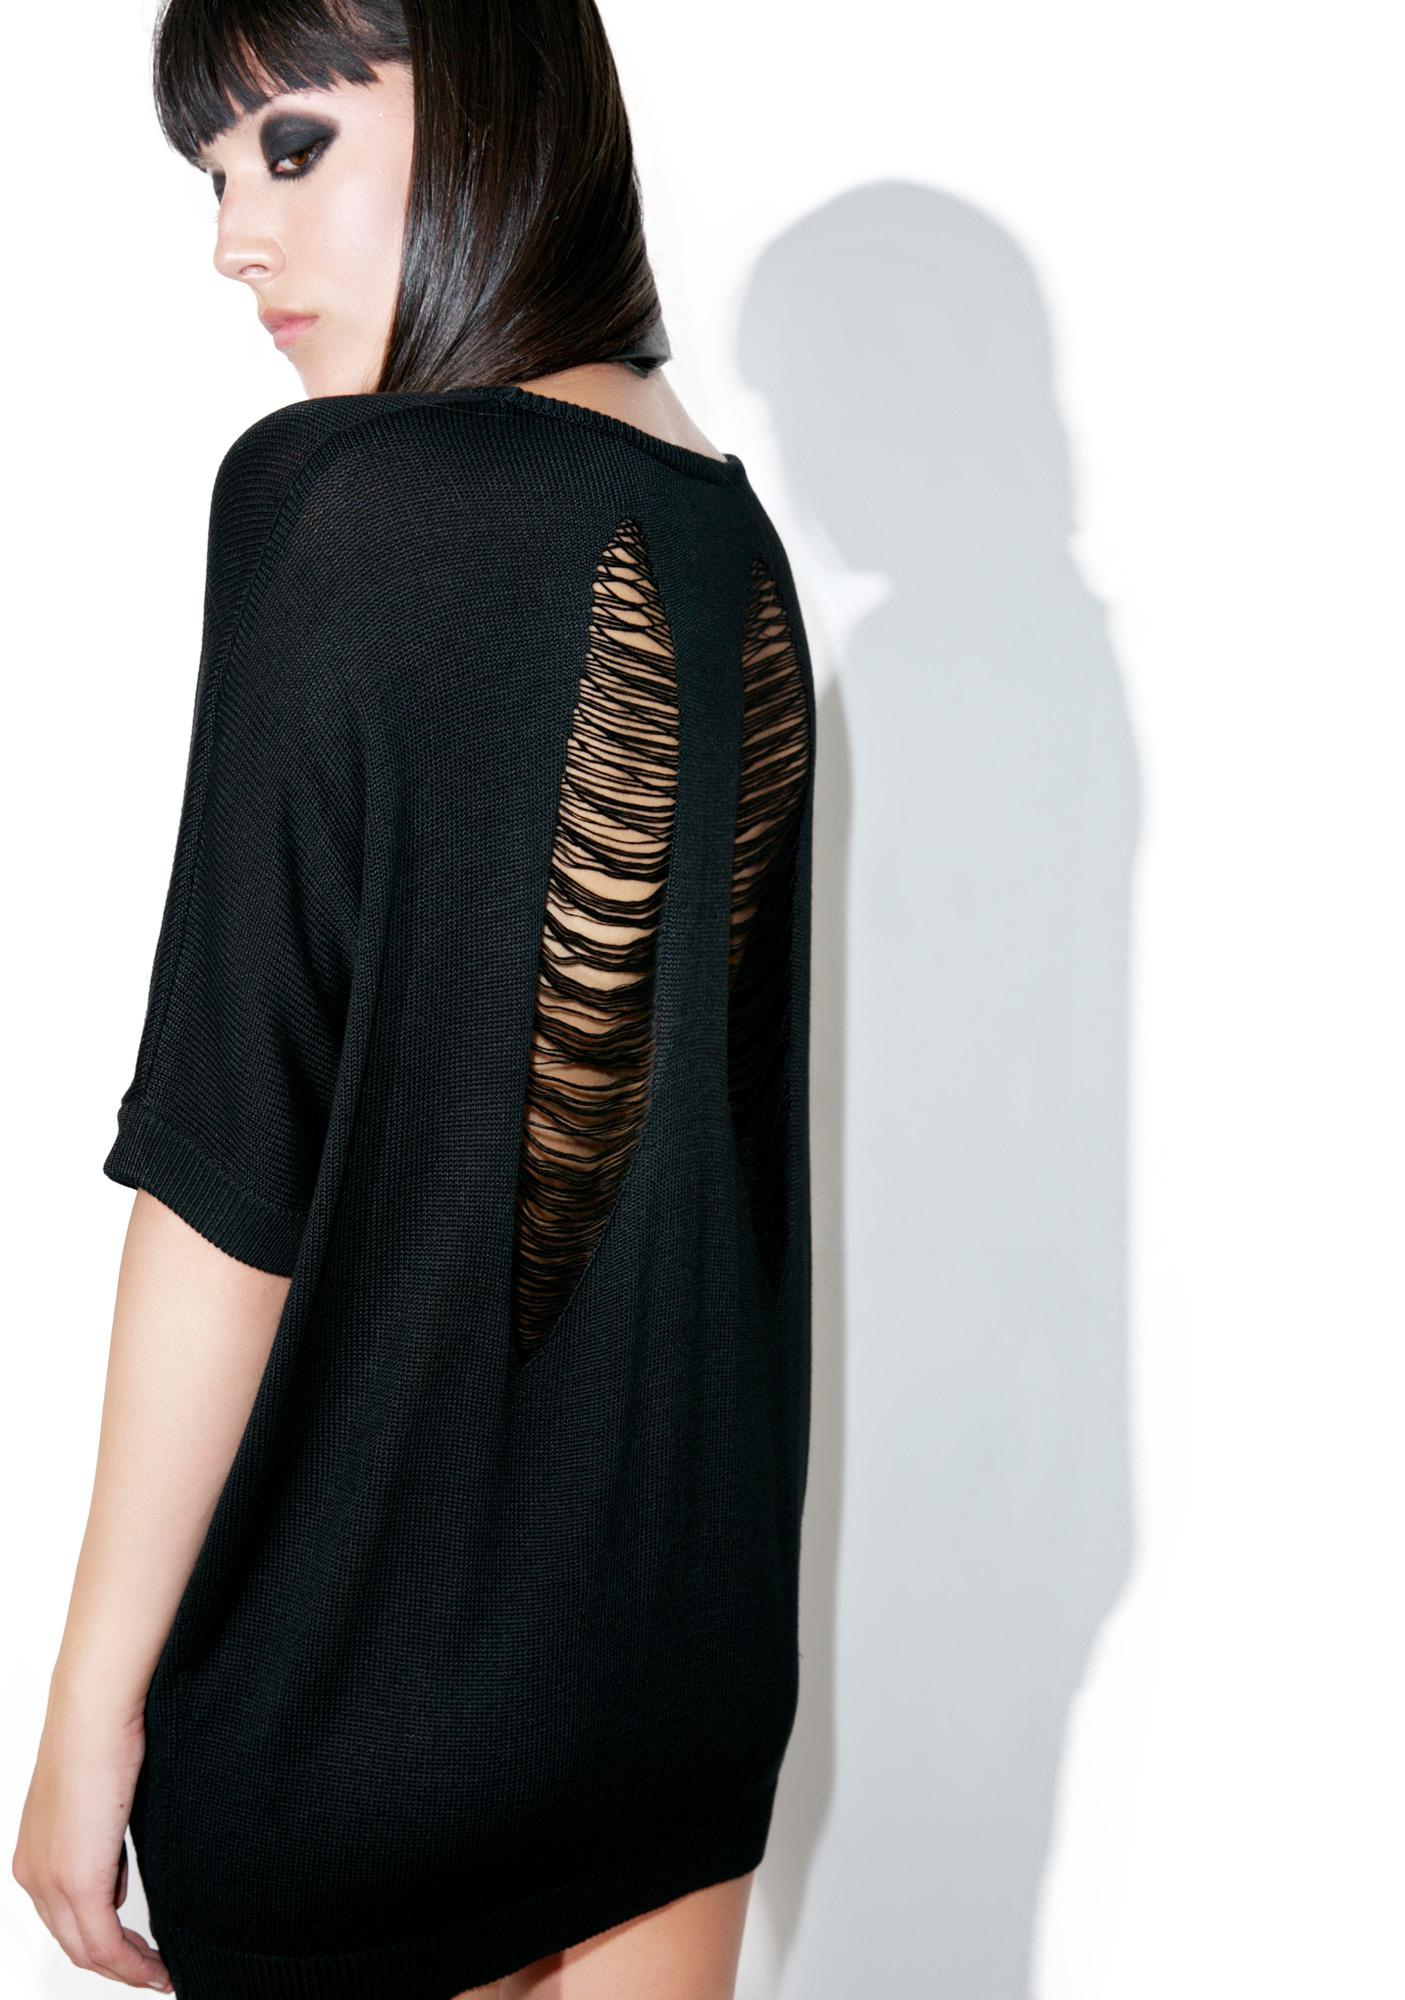 Killstar Got Plans Batwing Knit Top